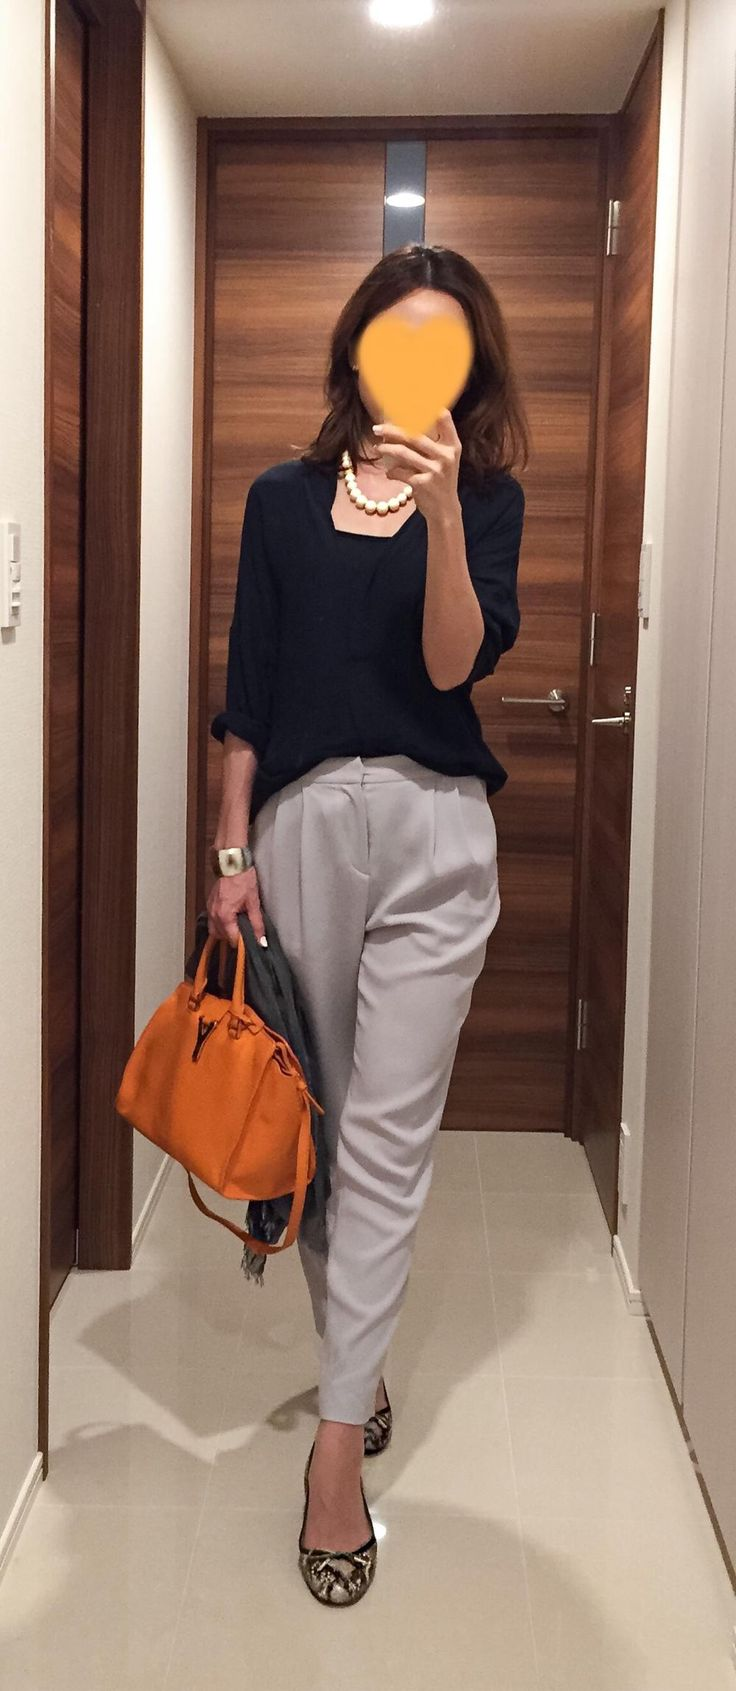 Navy shirt: ZARA, Grey pants: Des Pres, Orange bag: Saint Laurent, Flats: Fabio Rusconi